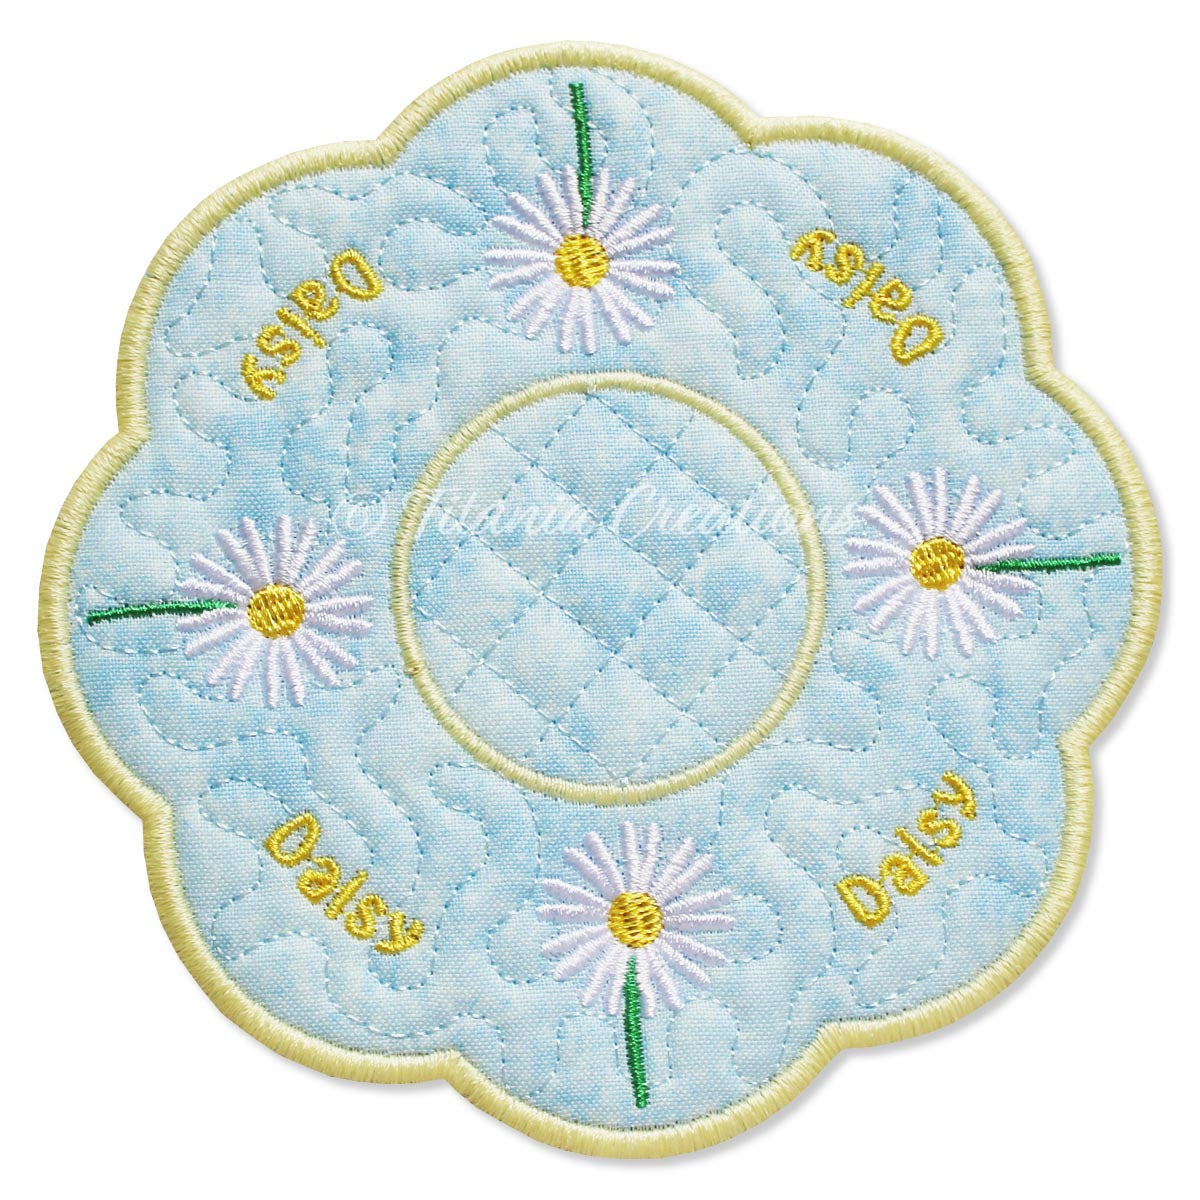 ITH Daisy Flower for April Candle Mat 5x5 6x6 7x7 8x8